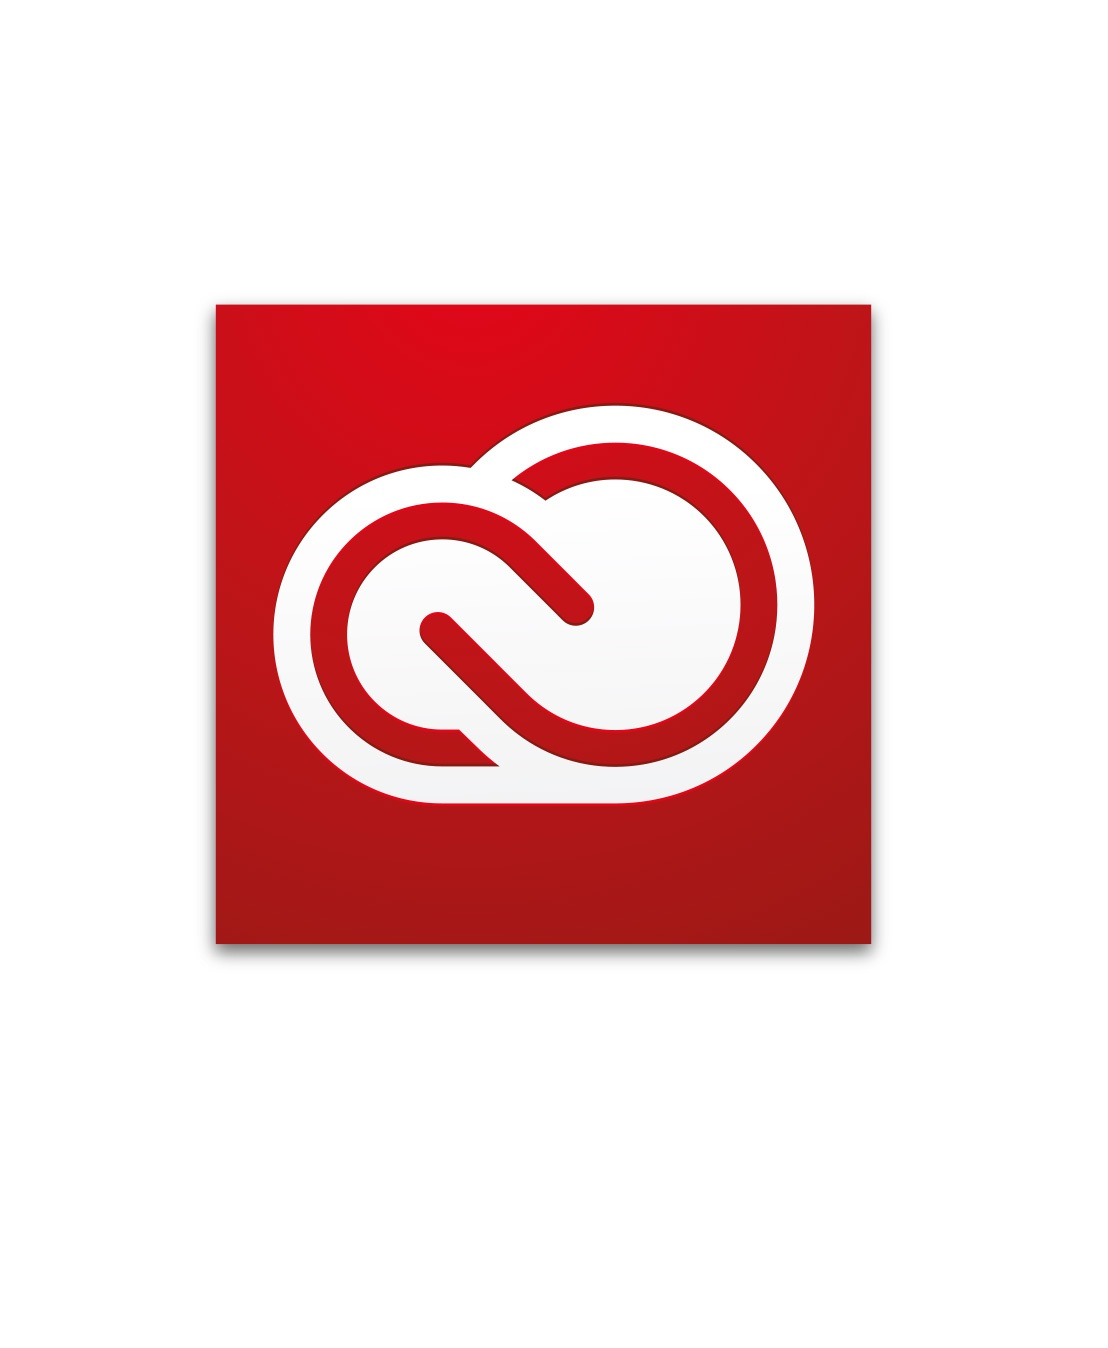 Adobe Creative Cloud for Teams All Apps VIP Lizenz 1 Jahr Subscription Download Education Win/Mac, Englisch (50-99 Lizenzen)